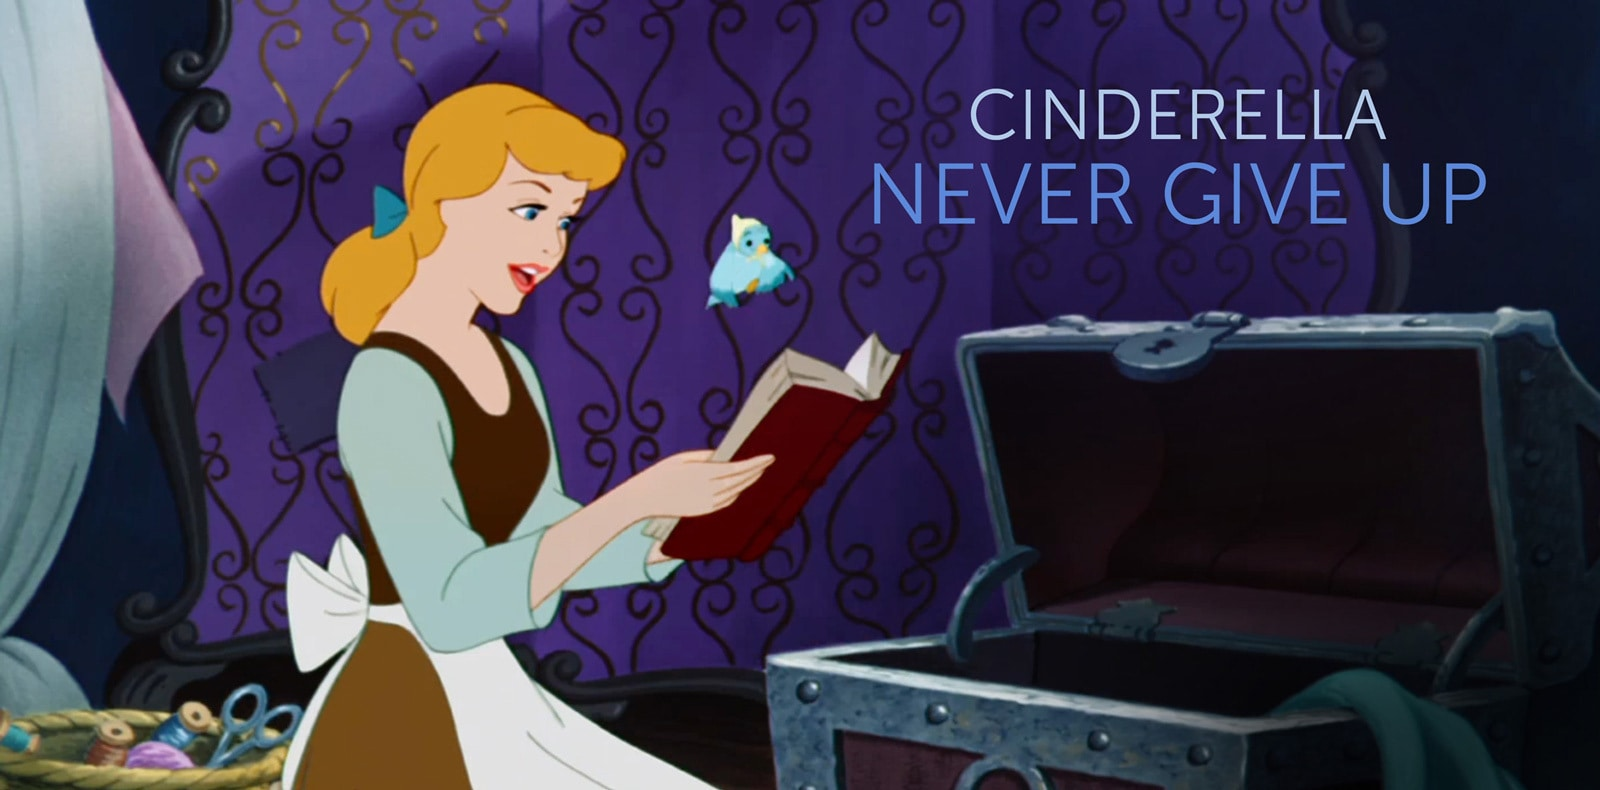 MOVIE ART Cinderella